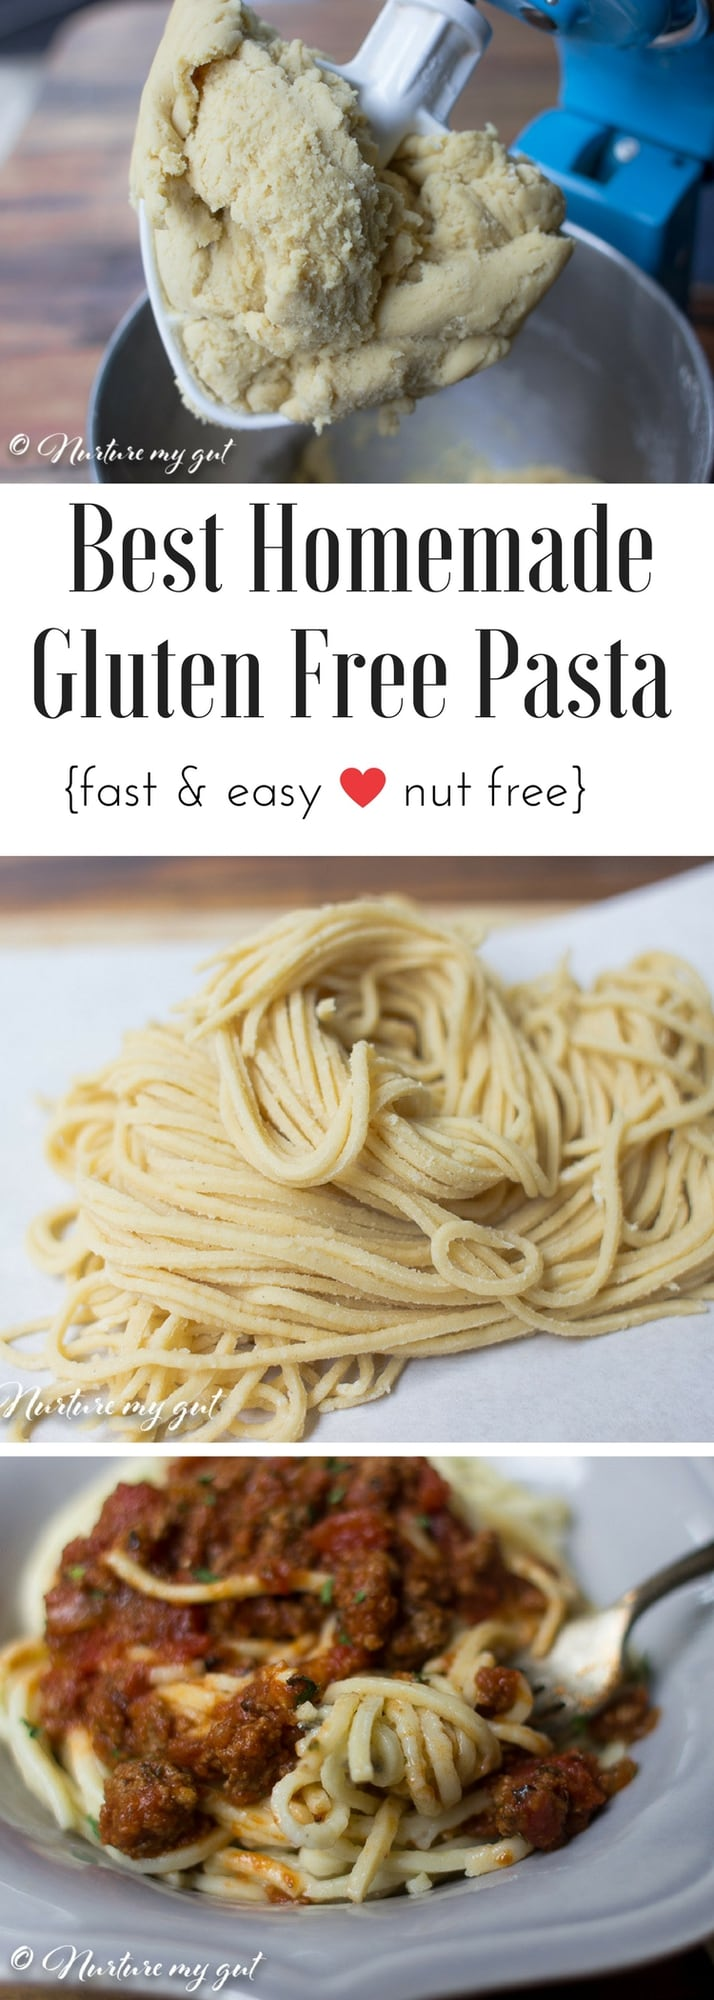 Best Homemade Gluten Free Pasta